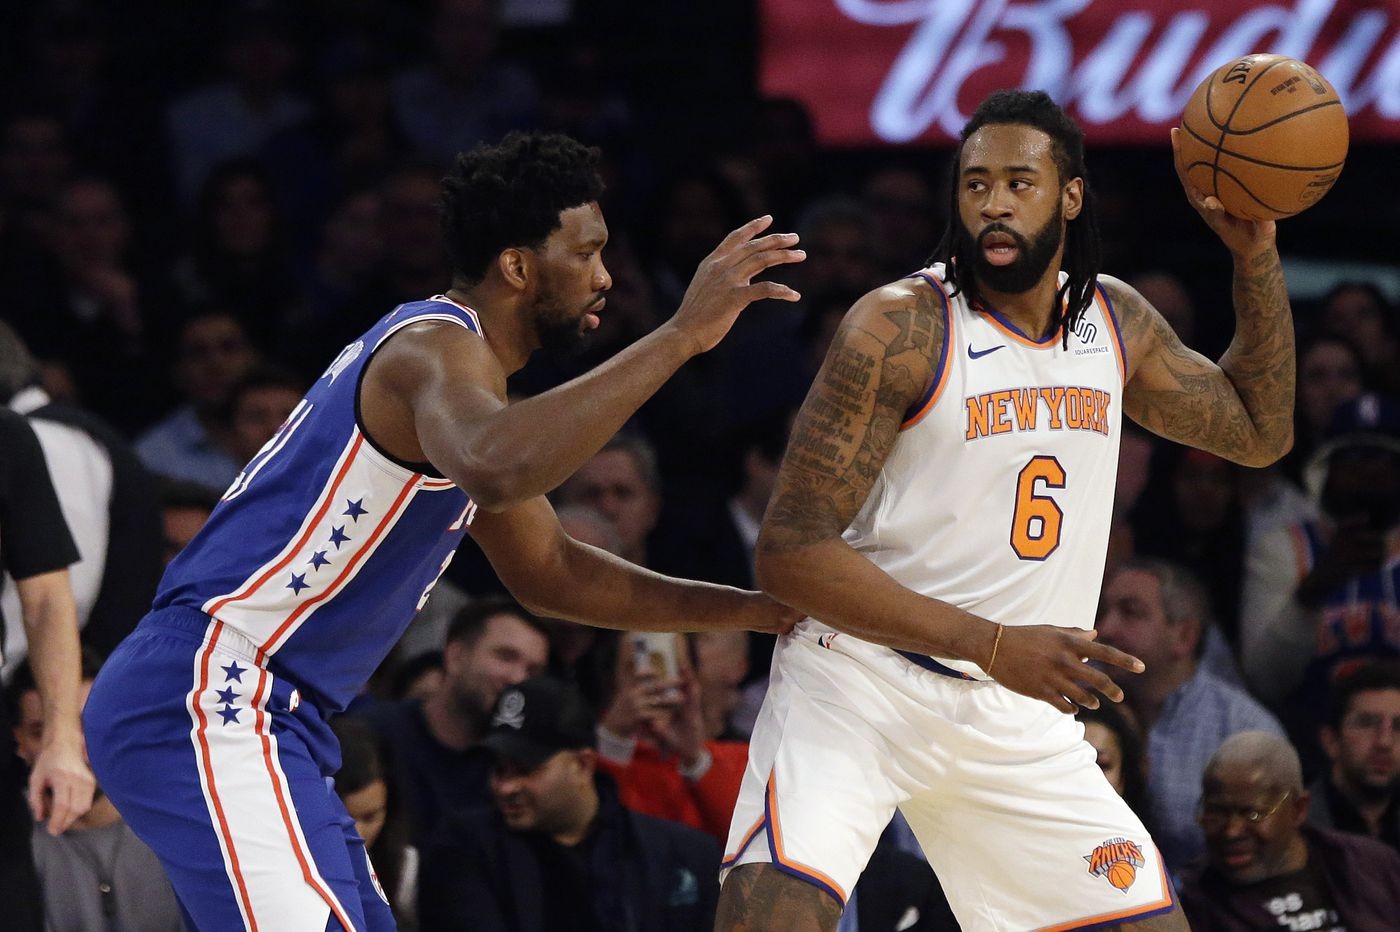 Sixers stop Knicks' second-half surge and win, 126-111